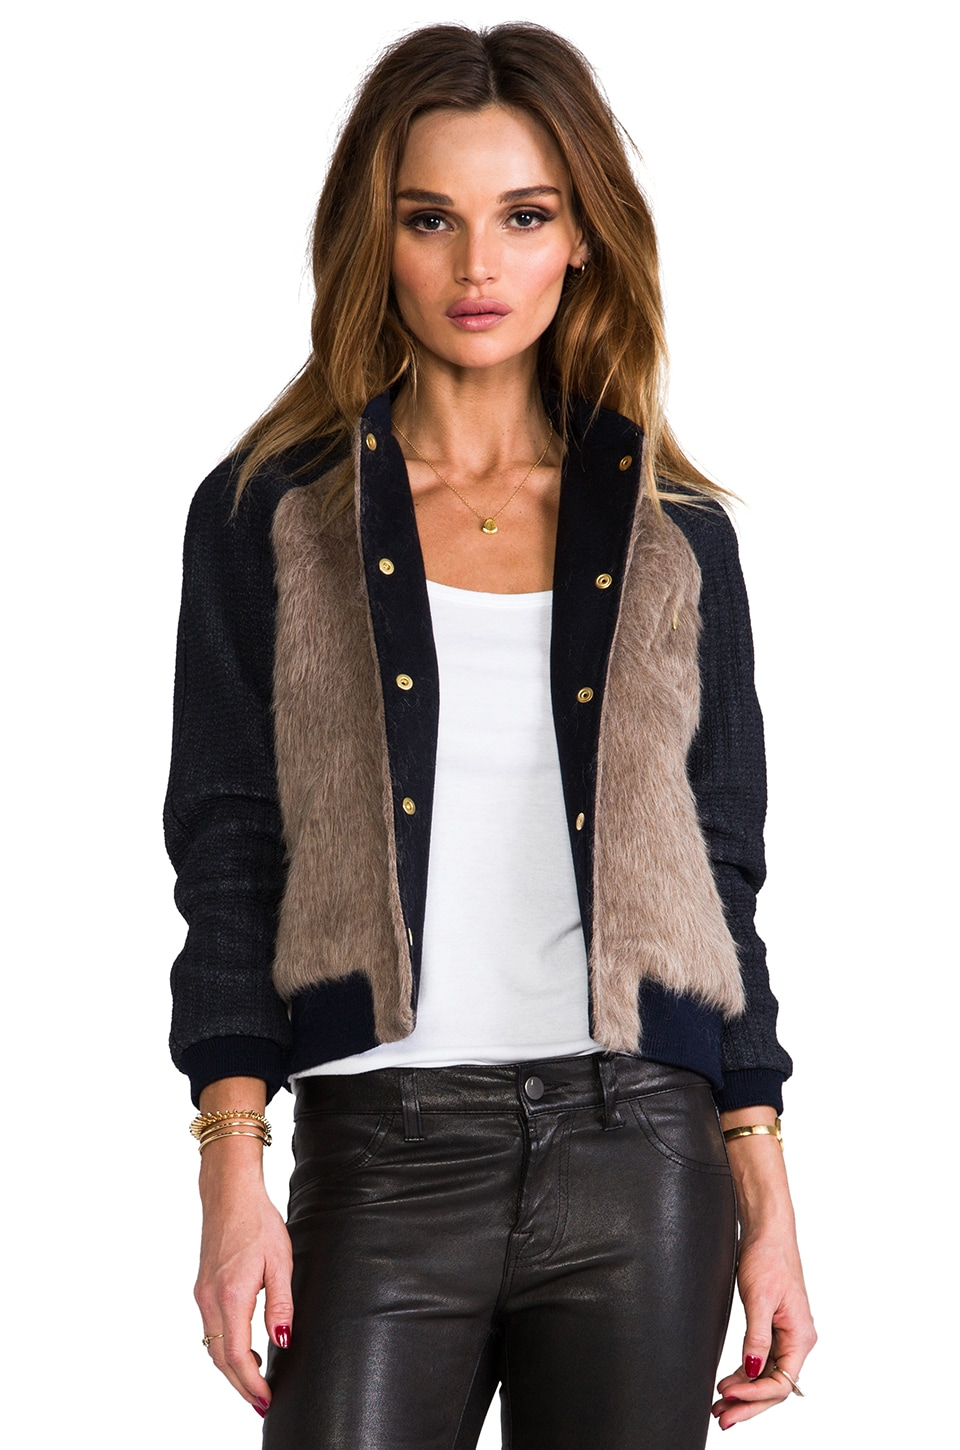 ROSEanna Paris Juno Faux Fur Bomber in Ecorre